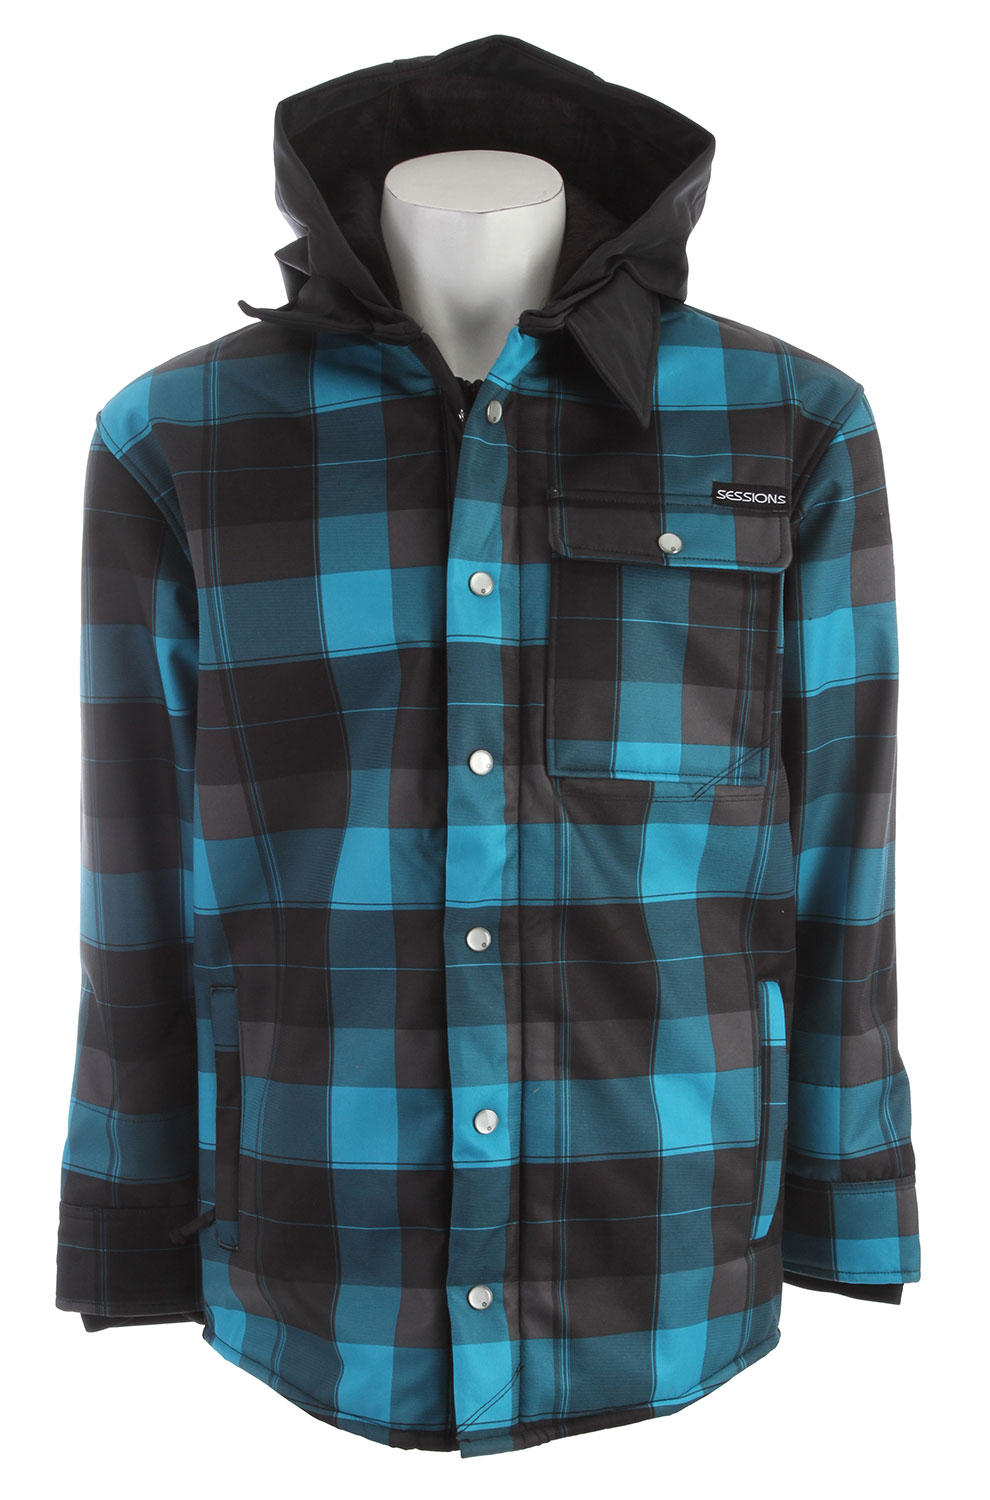 Sessions Outlaw Plaid Softshell Blue Plaid - $78.64